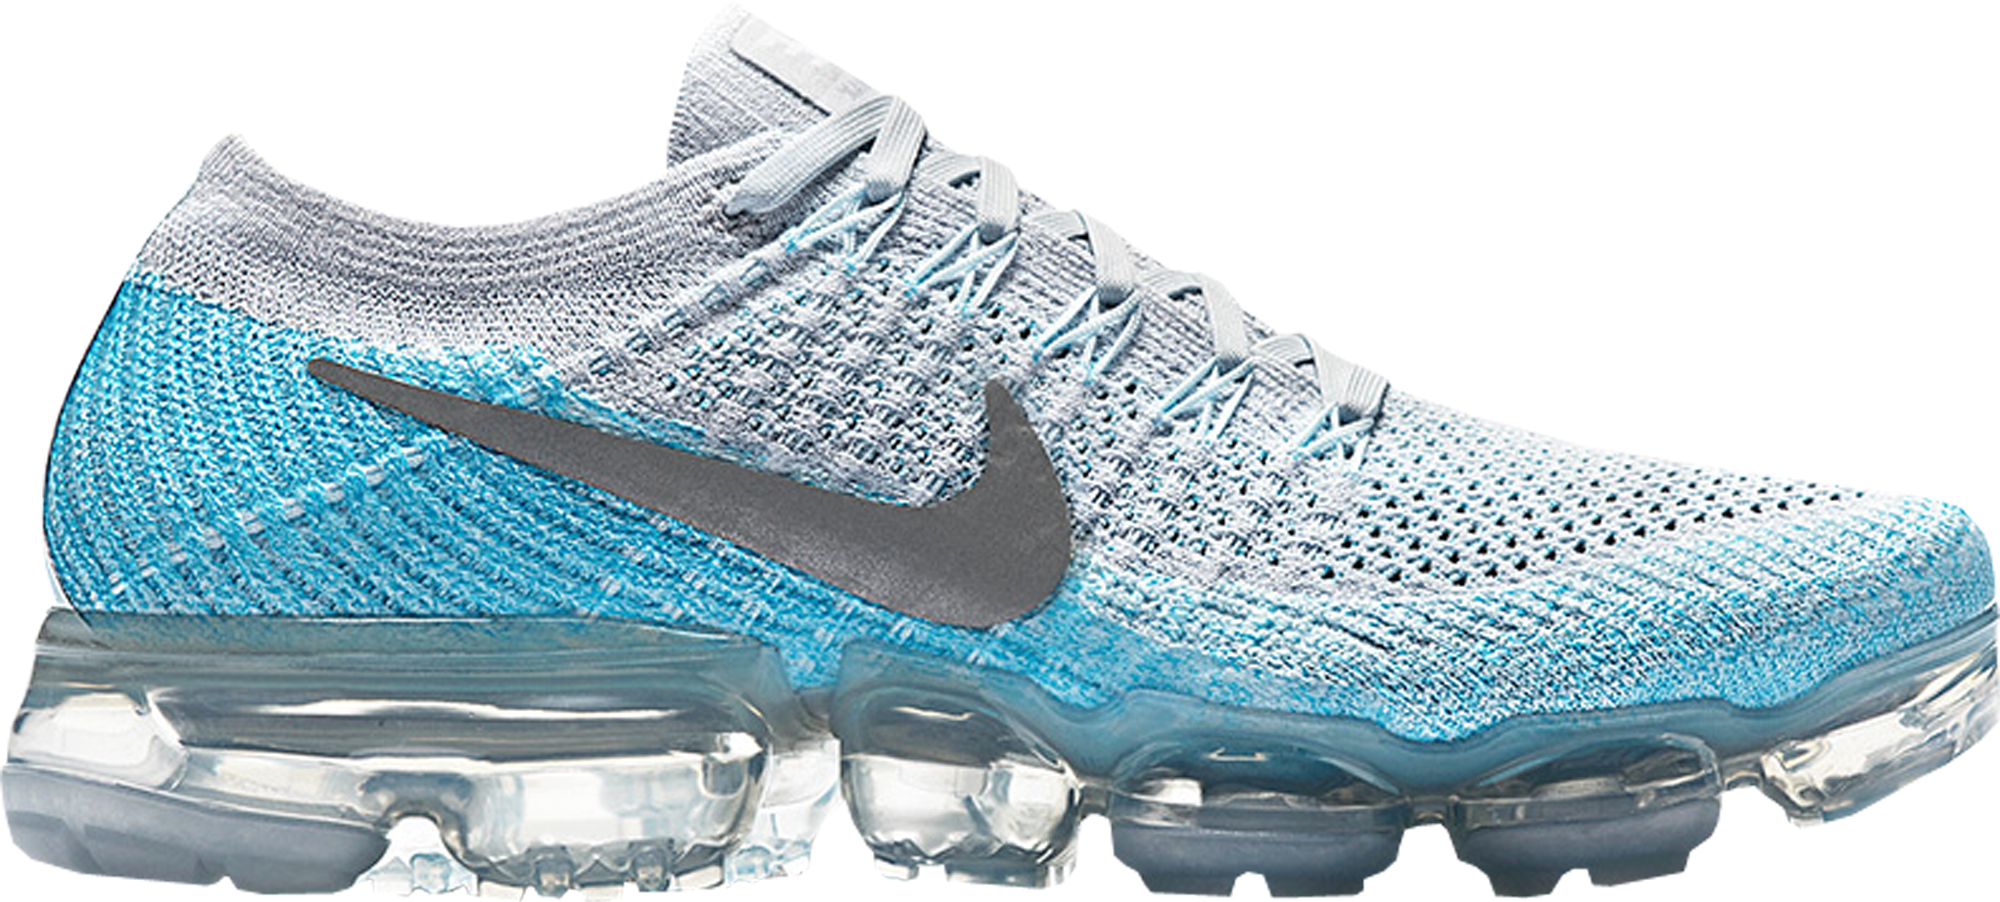 d0dfca236c8 Nike Air Vapormax Ice Flash Pack Grey biological-crop-protection.co.uk